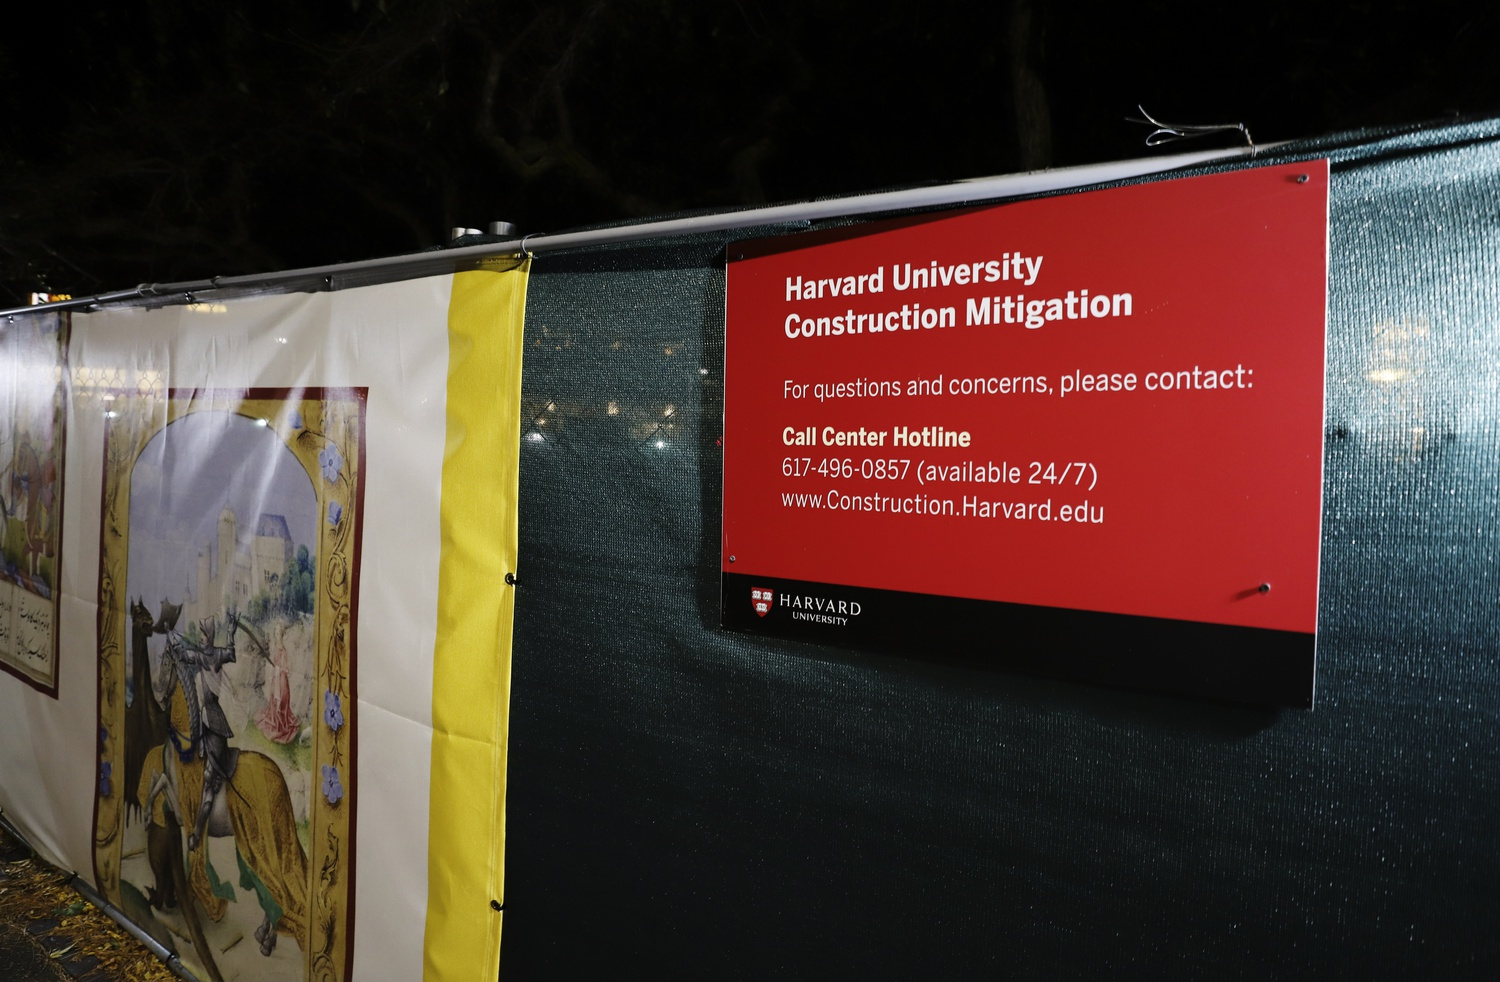 A construction mitigation sign hangs on a fence outside the Houghton Library construction site in Harvard Yard.